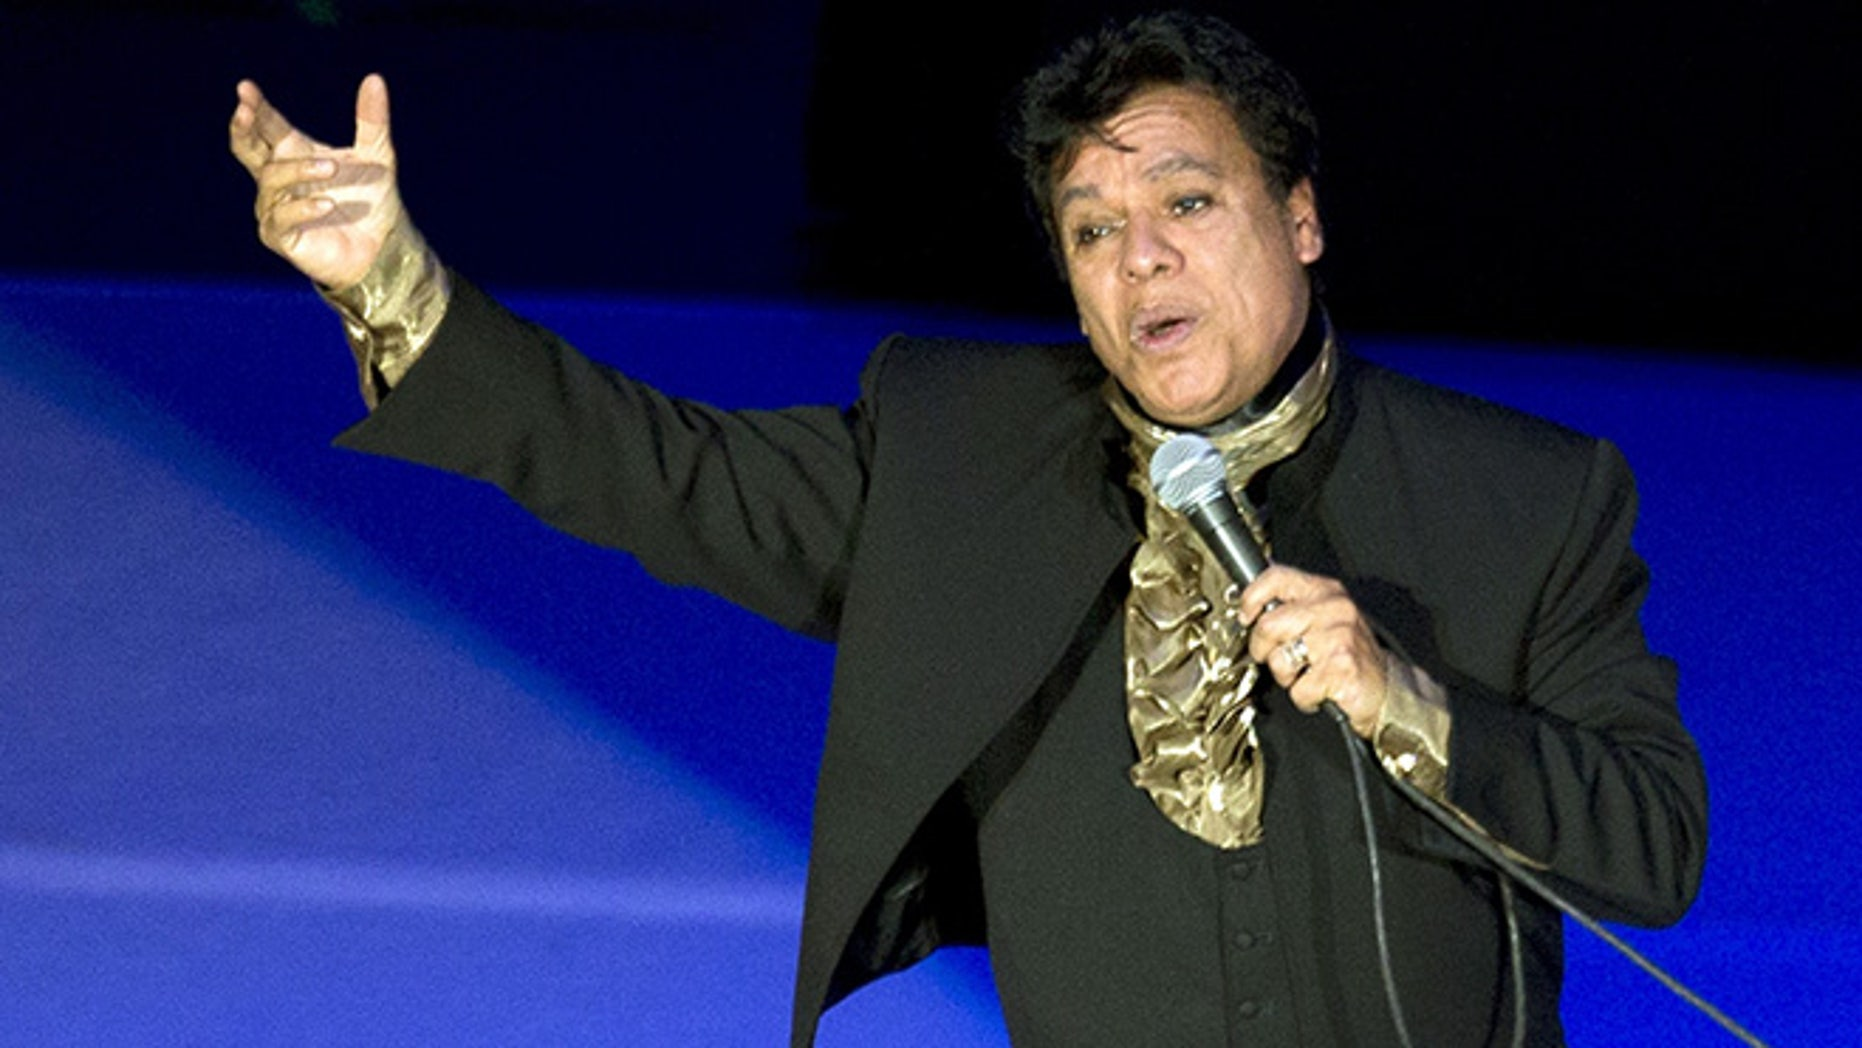 """FILE - In this April 10, 2015 file photo, Mexican singer-songwriter, Juan Gabriel, performs at the National Auditorium in Mexico City. Gabriel won the first Latin Grammy Award of his long career Thursday, Nov. 17, 2016, but presenter Andres Ceballos of the group Dvicio apparently didn't realize it was a posthumous prize. """"He's not here,"""" Ceballos said. """"The academy will make sure he receives this award."""" (AP Photo/Rebecca Blackwell, File)"""